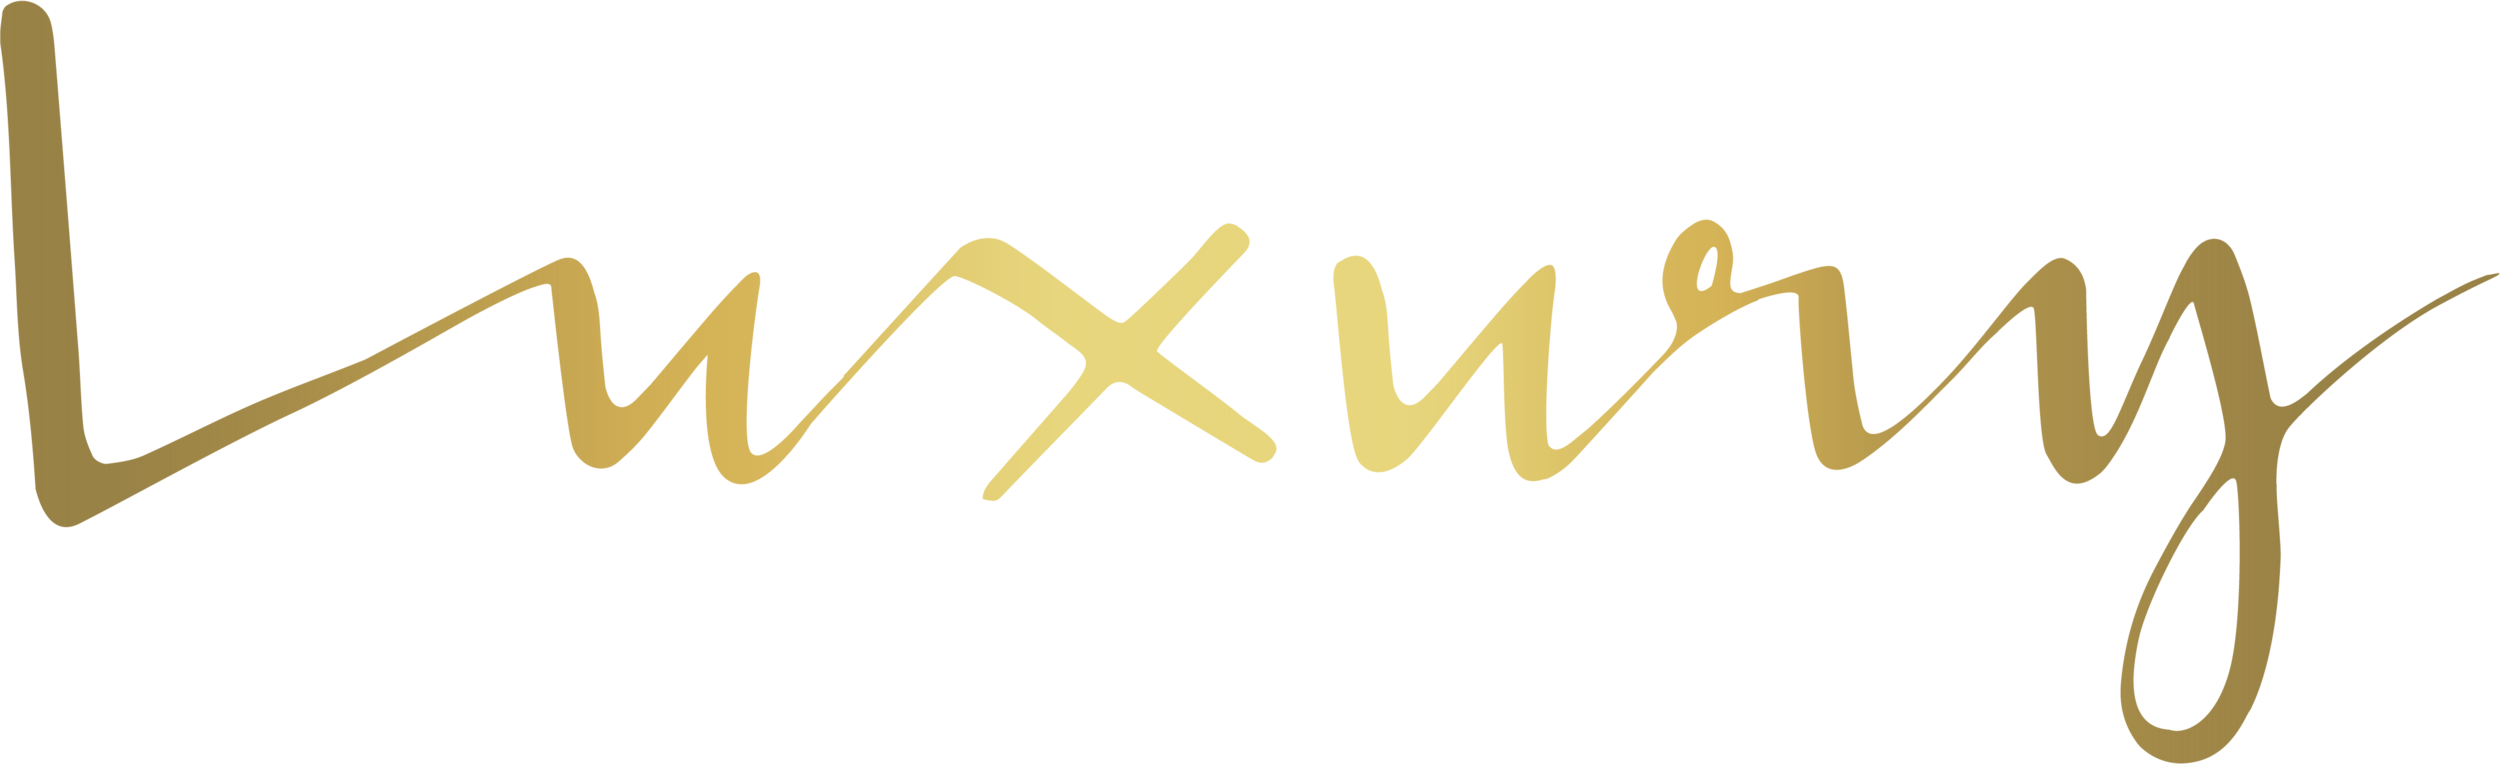 KW LUXURY INT 2017.png